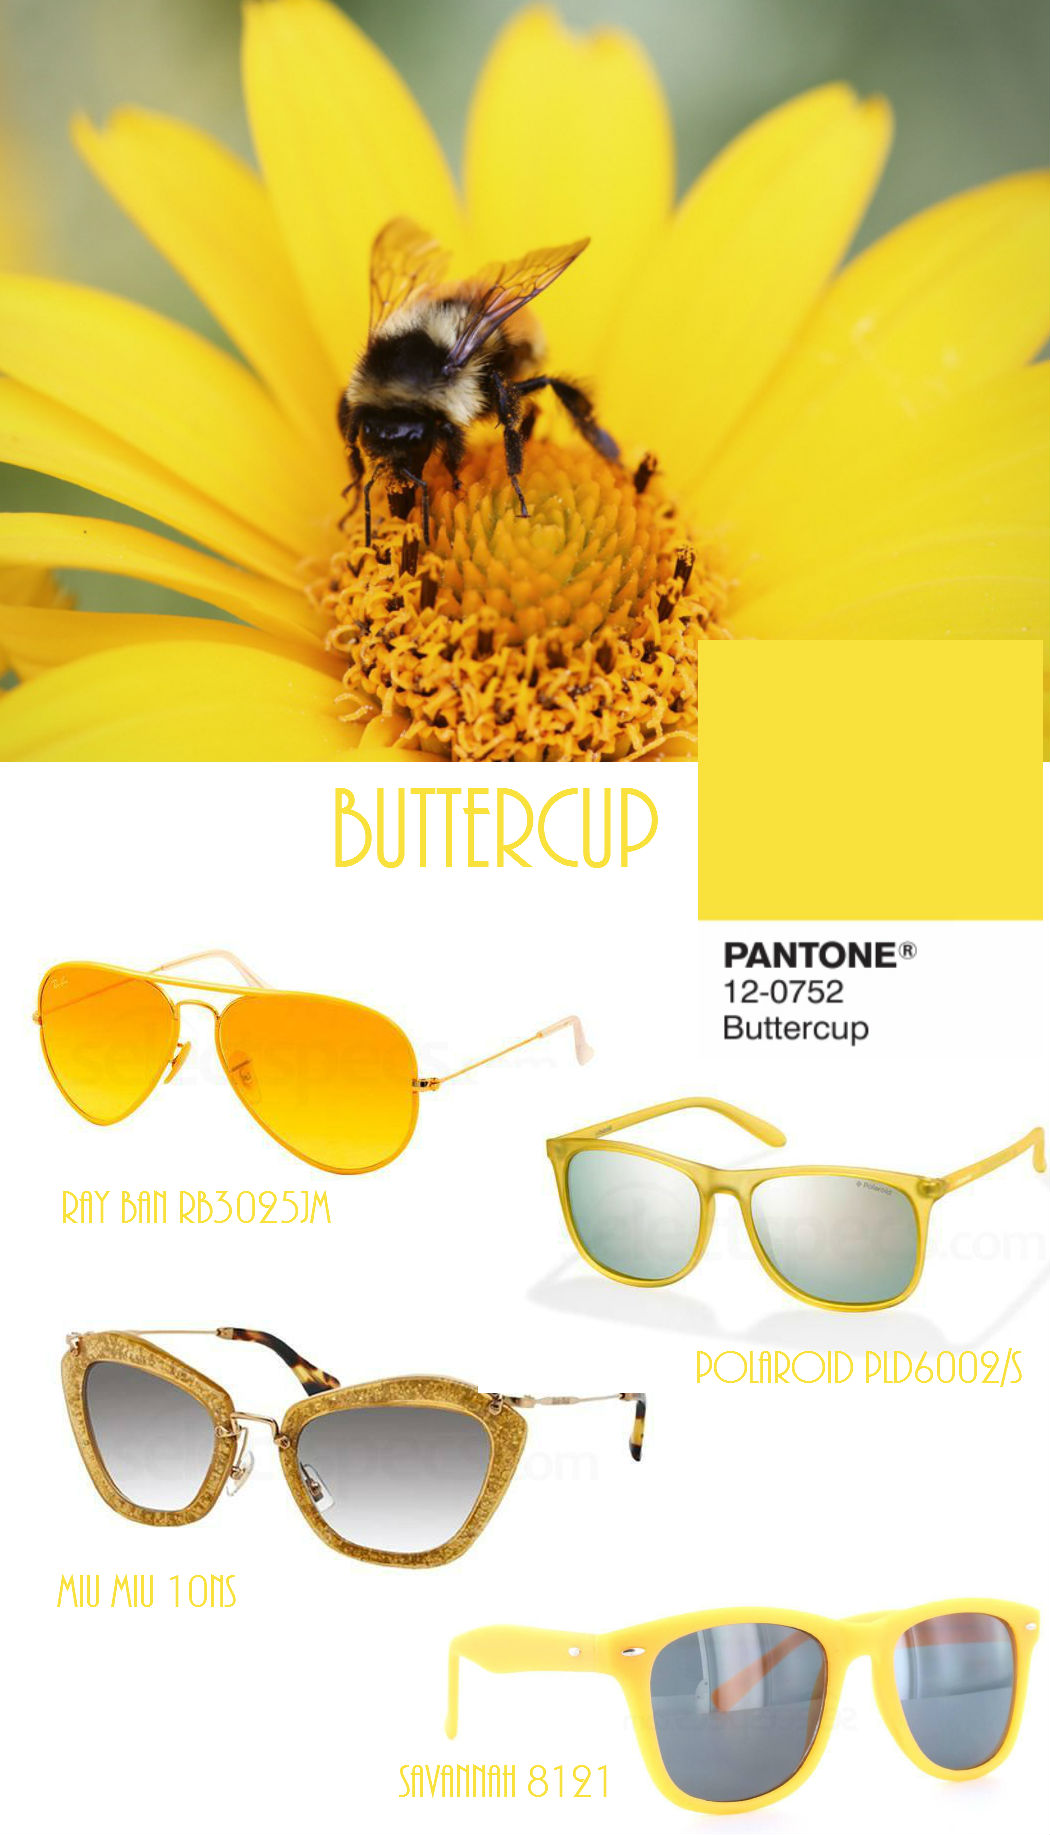 Pantone Buttercup sunglasses